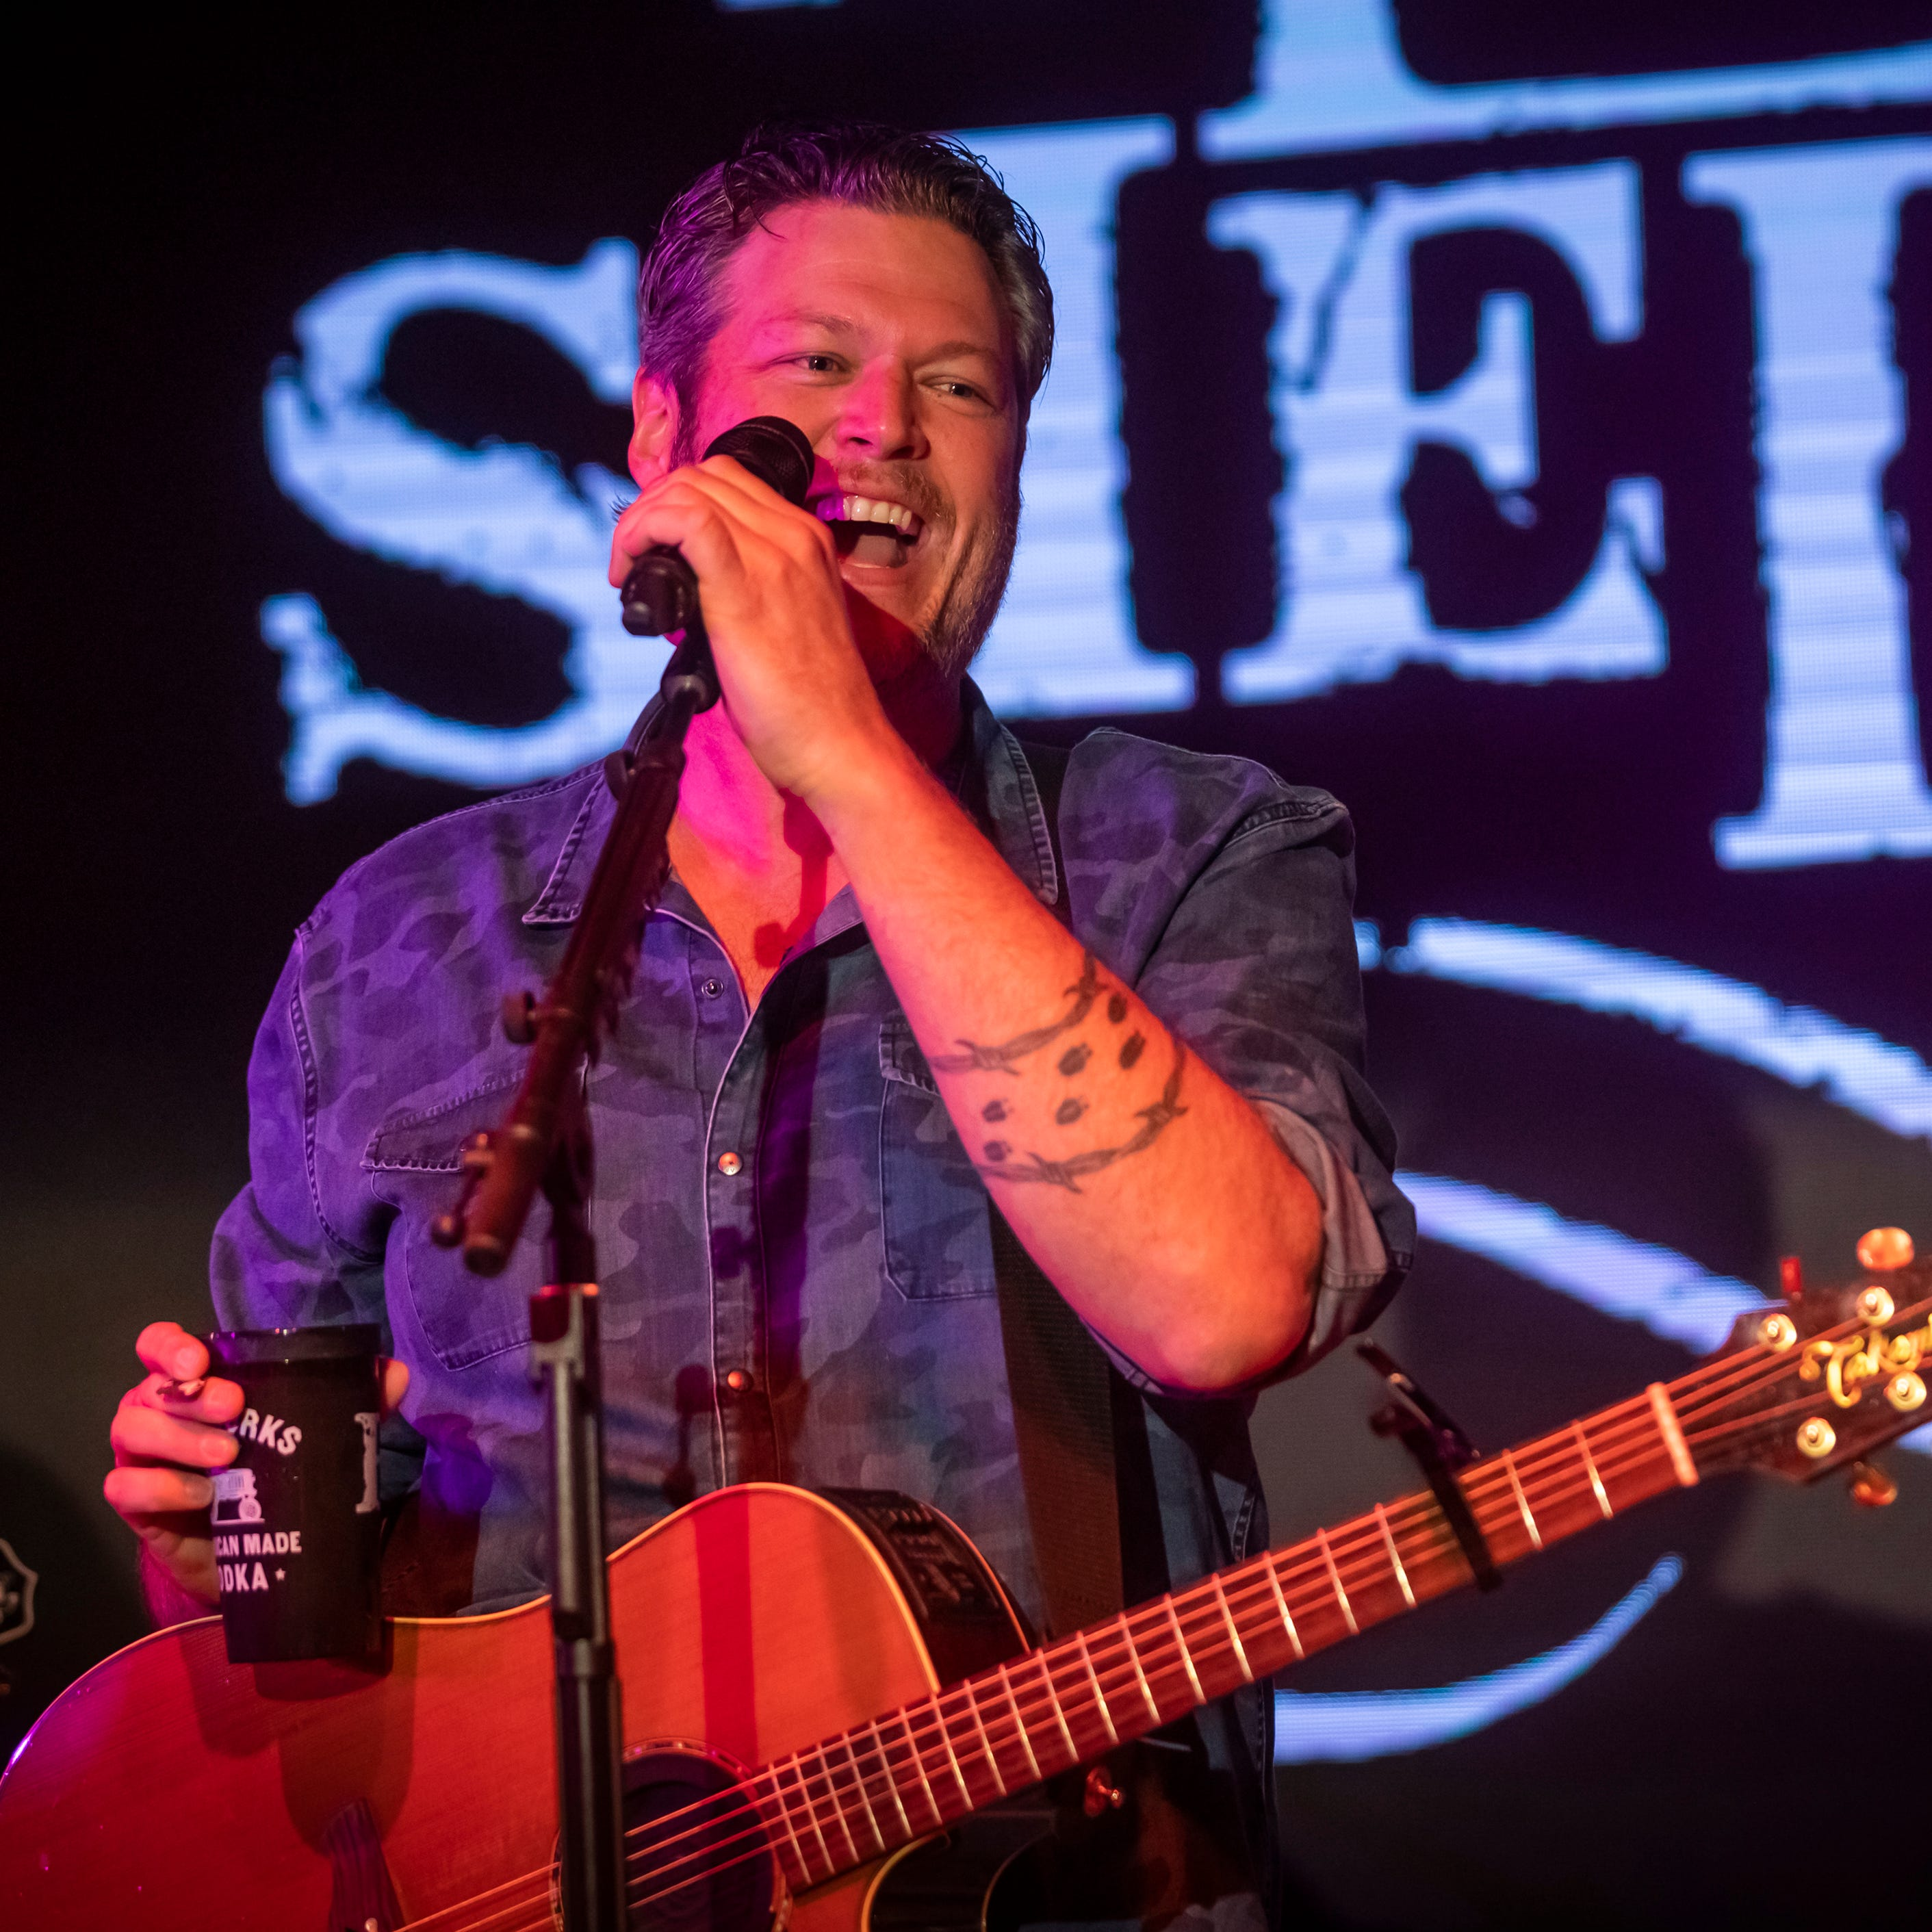 Ole Red Gatlinburg to host week-long opening celebration in March with Blake Shelton show